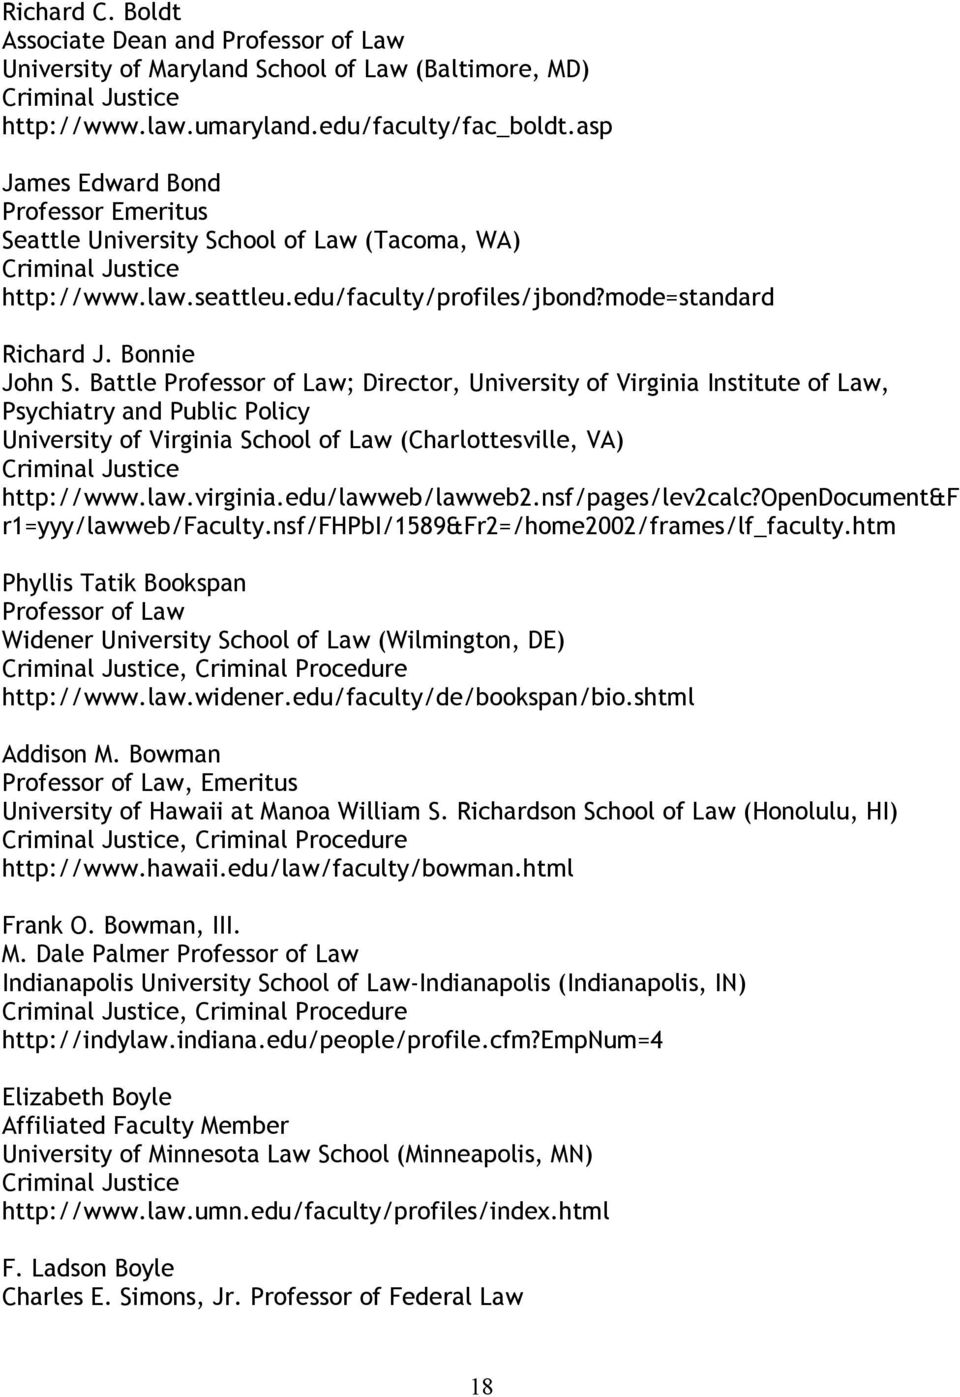 Battle ; Director, University of Virginia Institute of Law, Psychiatry and Public Policy University of Virginia School of Law (Charlottesville, VA) http://www.law.virginia.edu/lawweb/lawweb2.